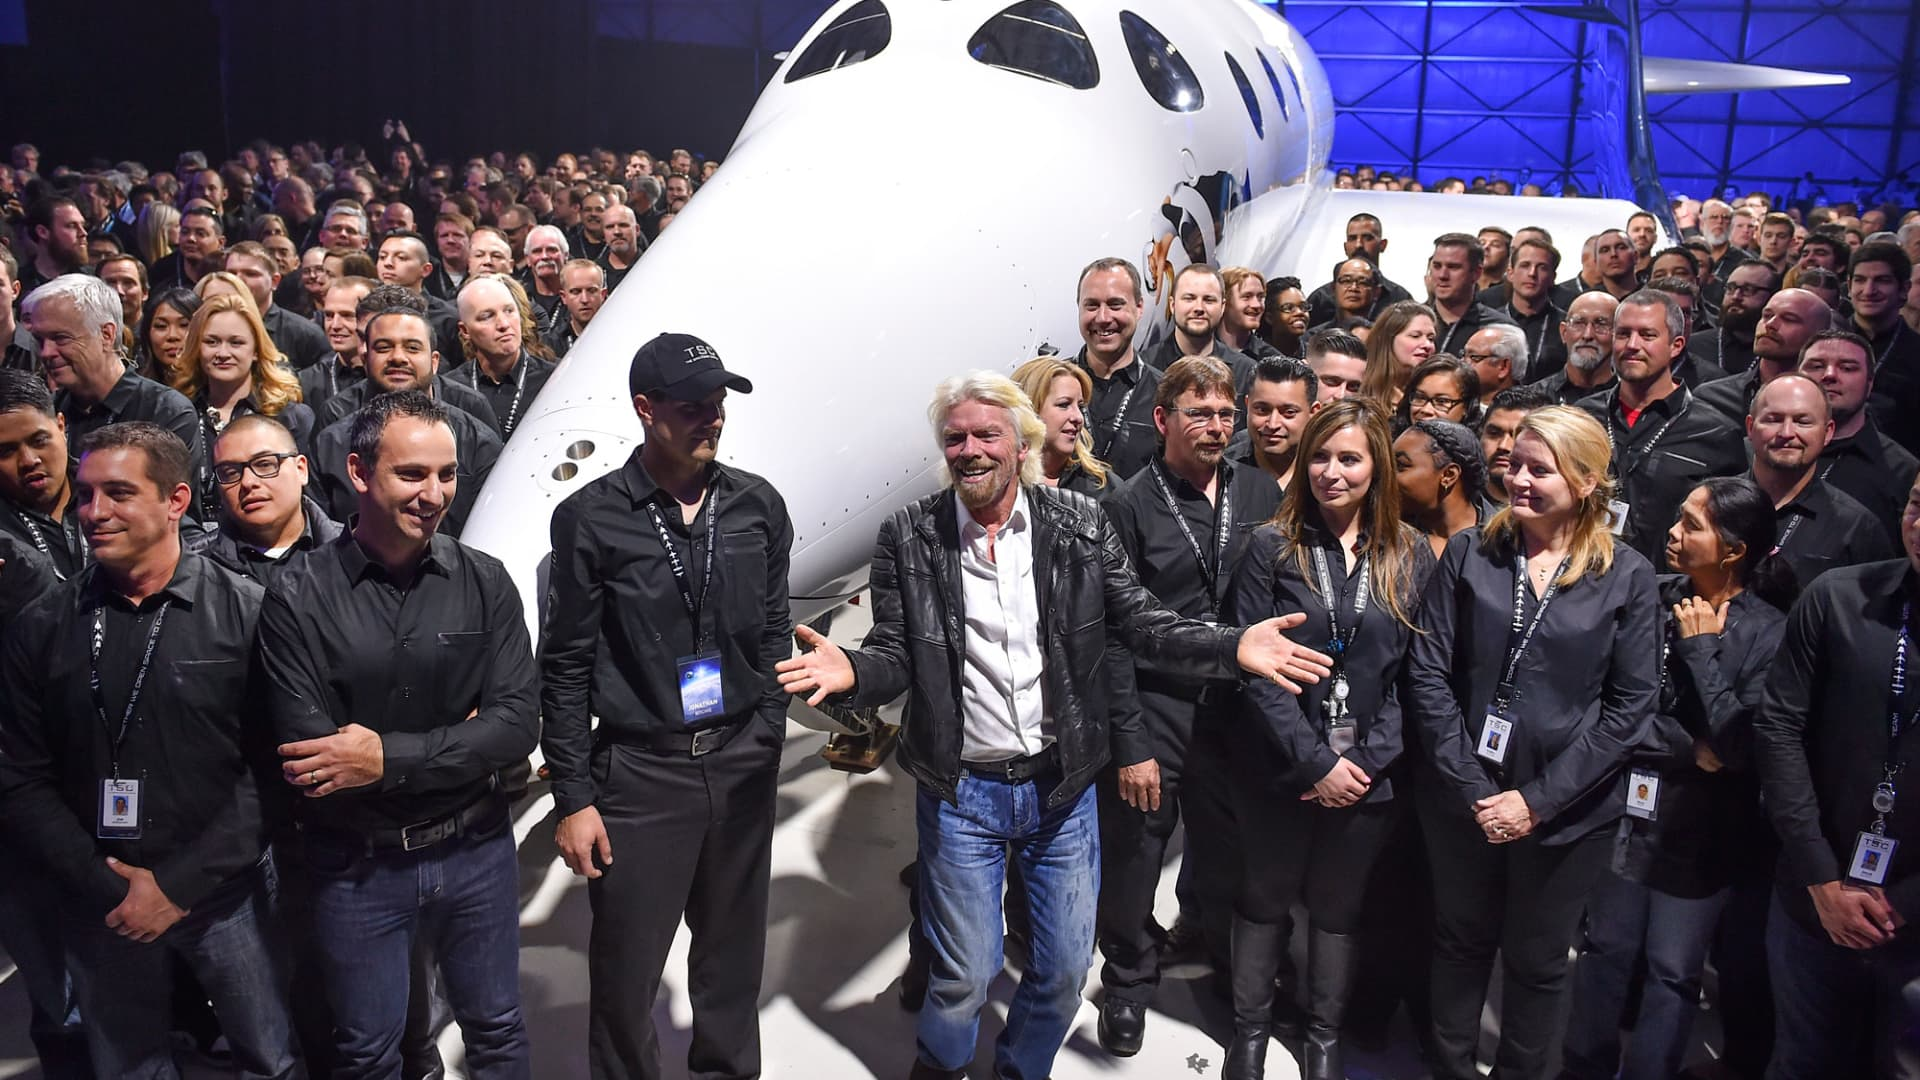 Virgin Galactic's Richard Branson, front center, gathers with Virgin Galactic employees in front of the new SpaceShip Two VSS Unity after a roll-out ceremony of the new aircraft at the Mojave Air and Space Port on February 19, 2016 in Mojave, Ca.